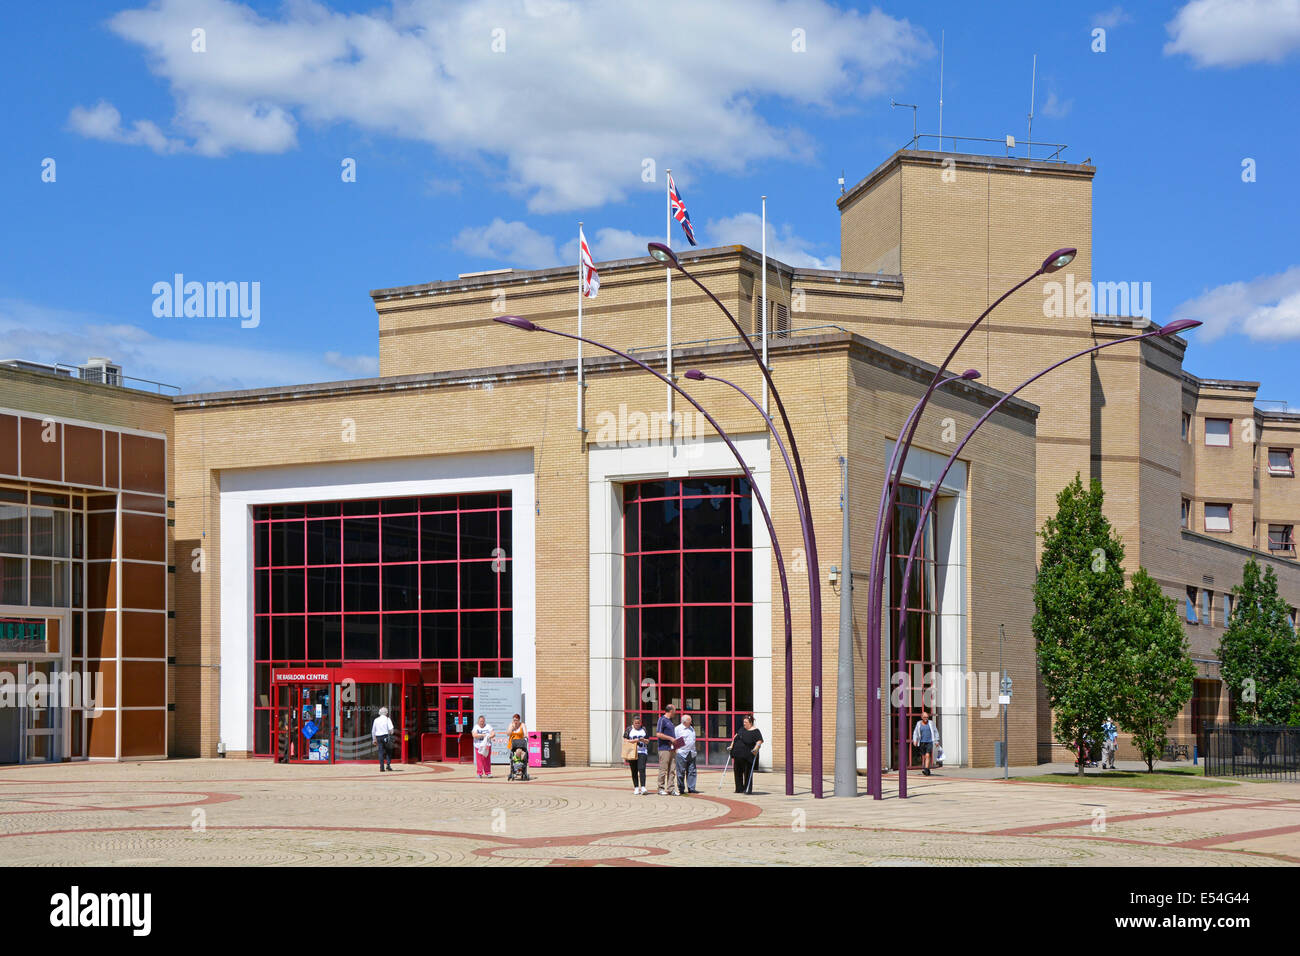 St Martins Square in Basildon new town centre with offices of various local and national government departments - Stock Image